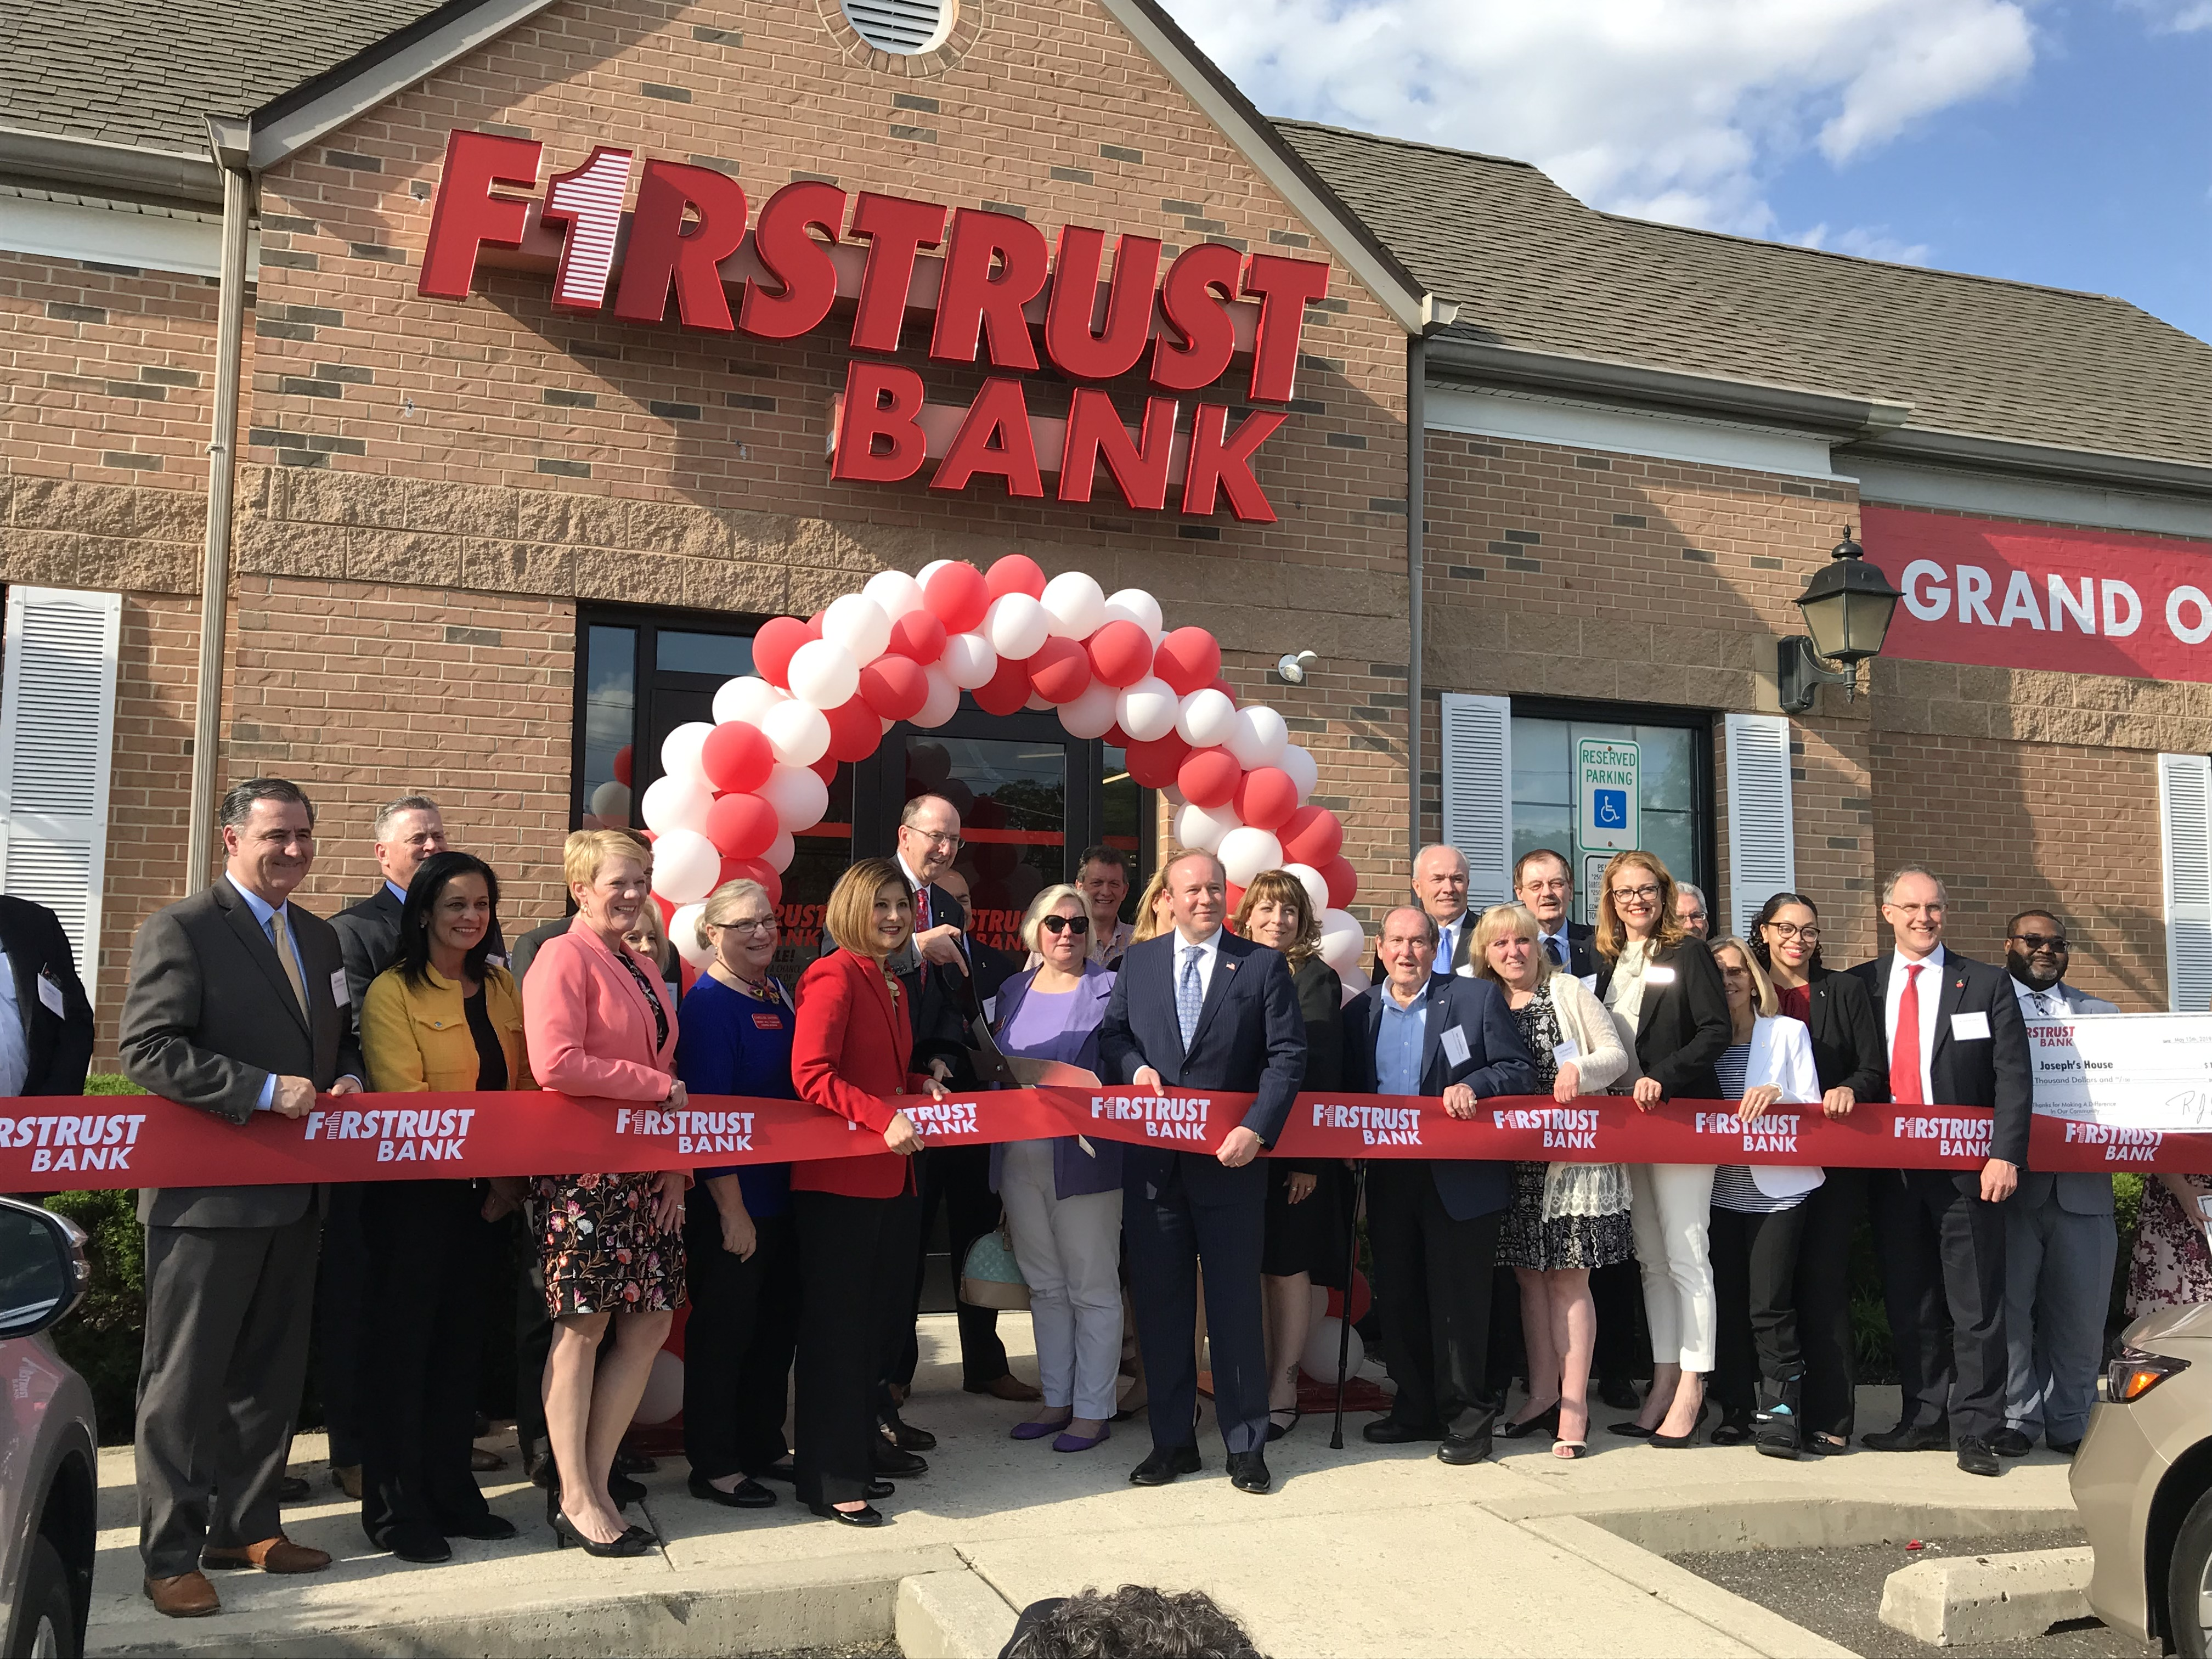 First Trust Bank Grand Opening Business Entitlement Services